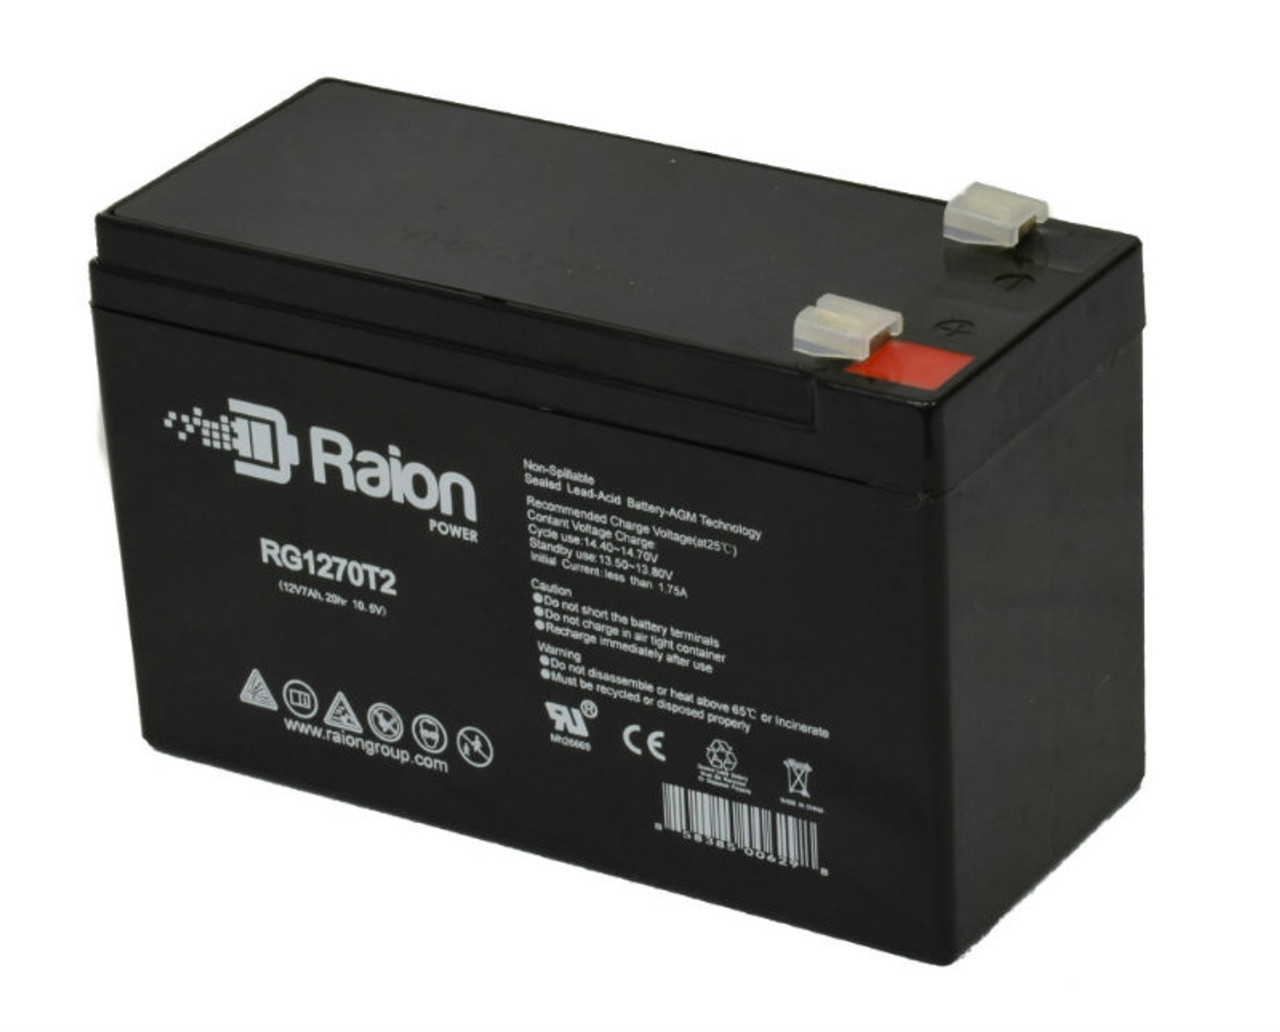 Raion Power RG1270T1 Replacement Battery for Power Source WP7.5-12 (91-190)